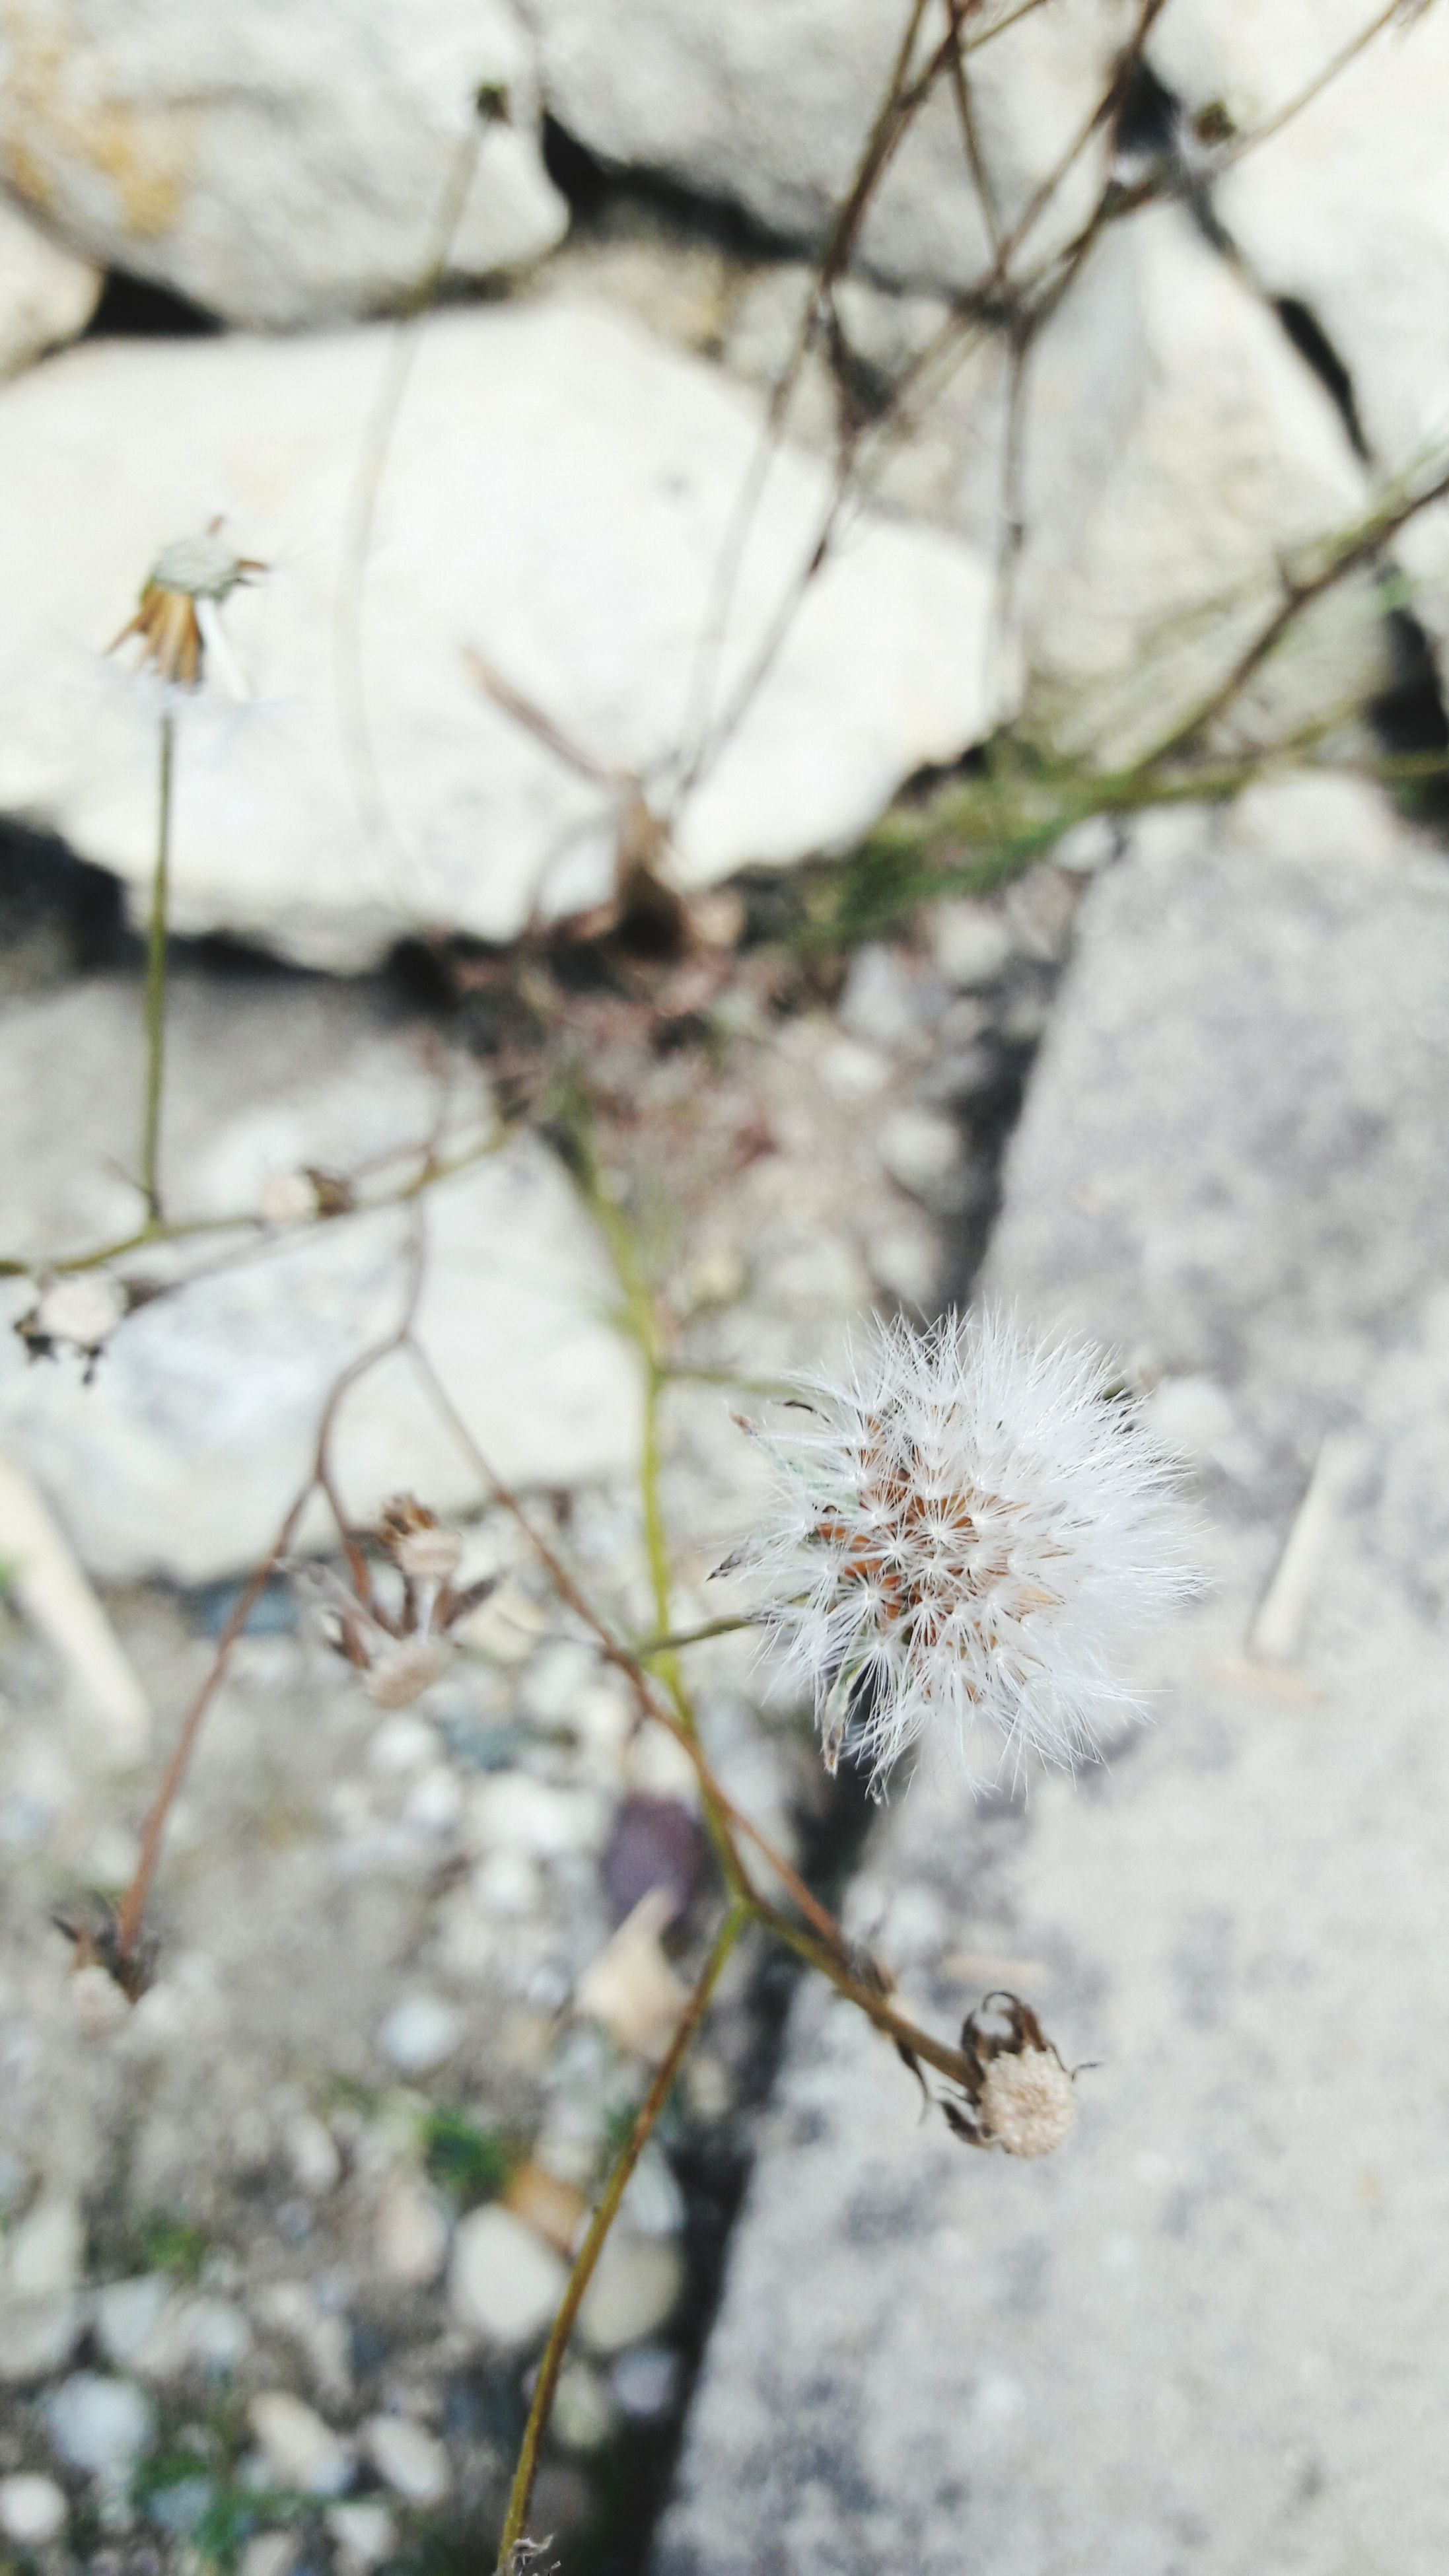 fragility, flower, dandelion, freshness, focus on foreground, close-up, growth, stem, beauty in nature, plant, springtime, nature, flower head, softness, blossom, botany, day, uncultivated, in bloom, single flower, no people, wildflower, dandelion seed